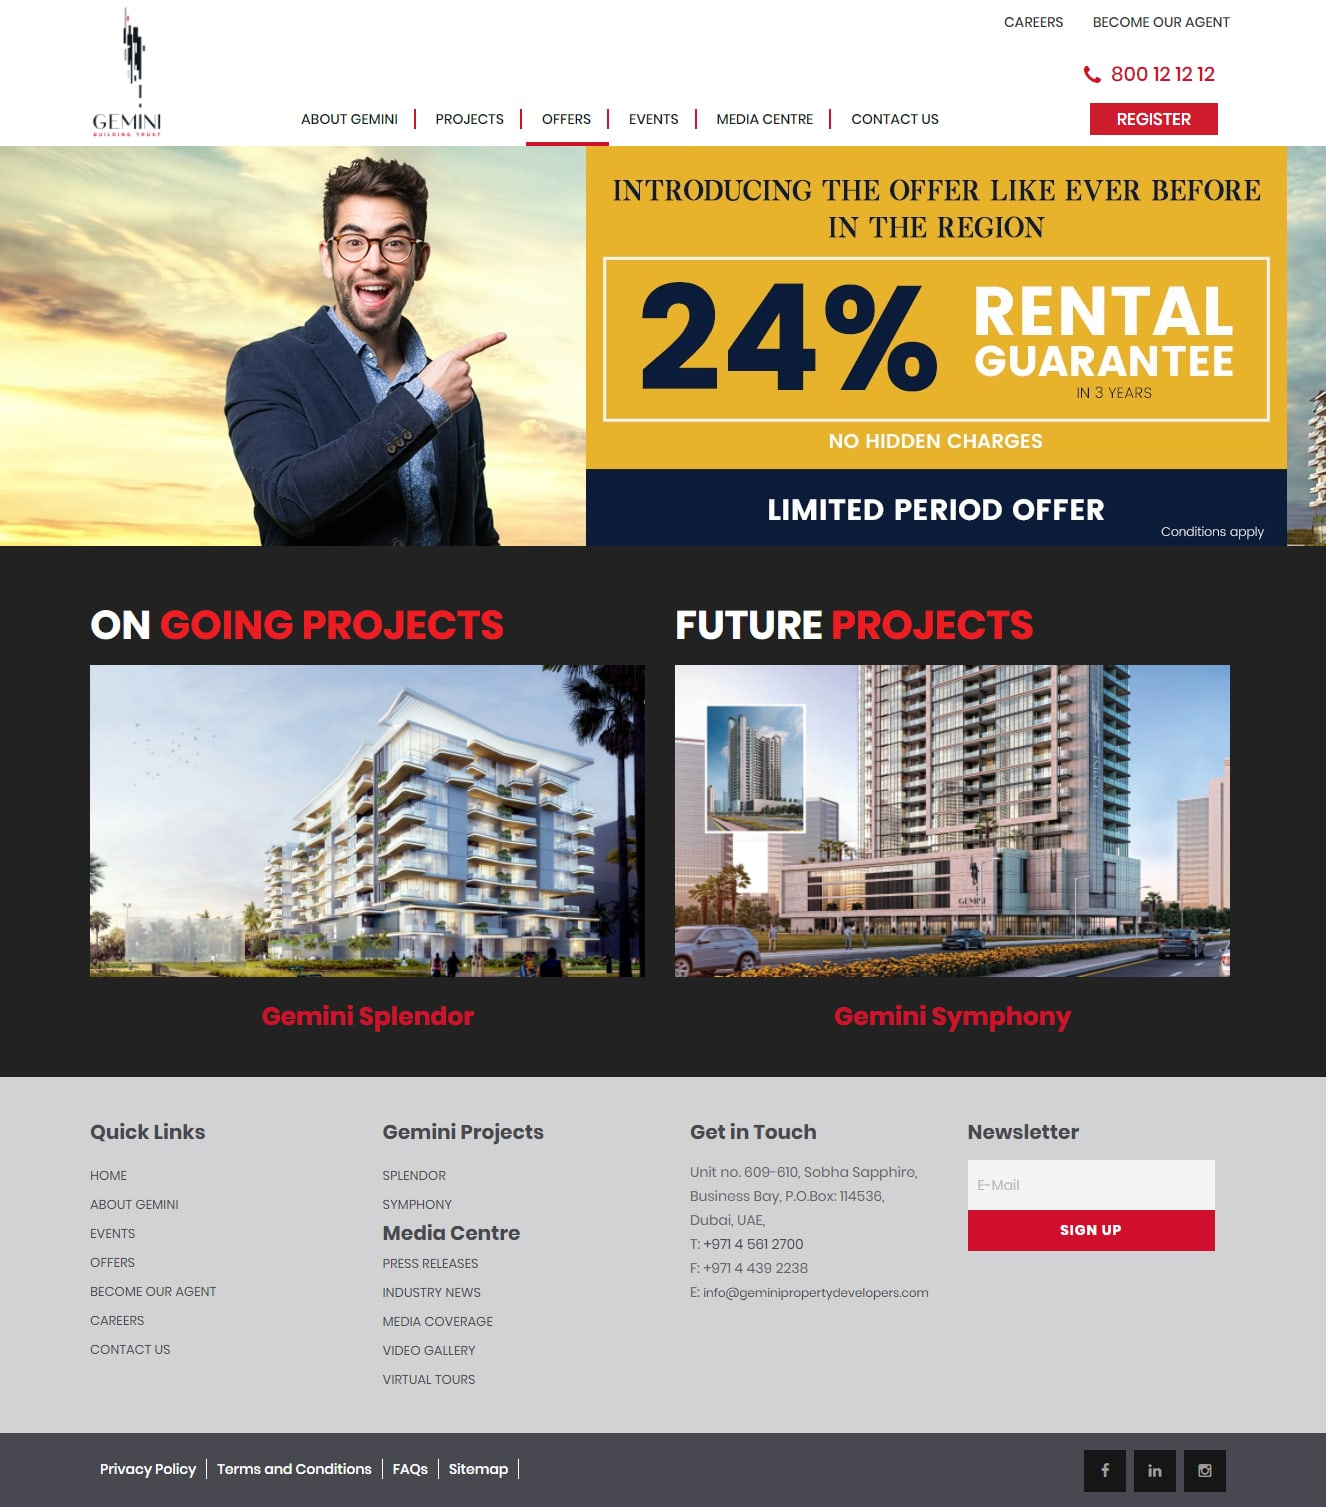 Gemini Property Developers